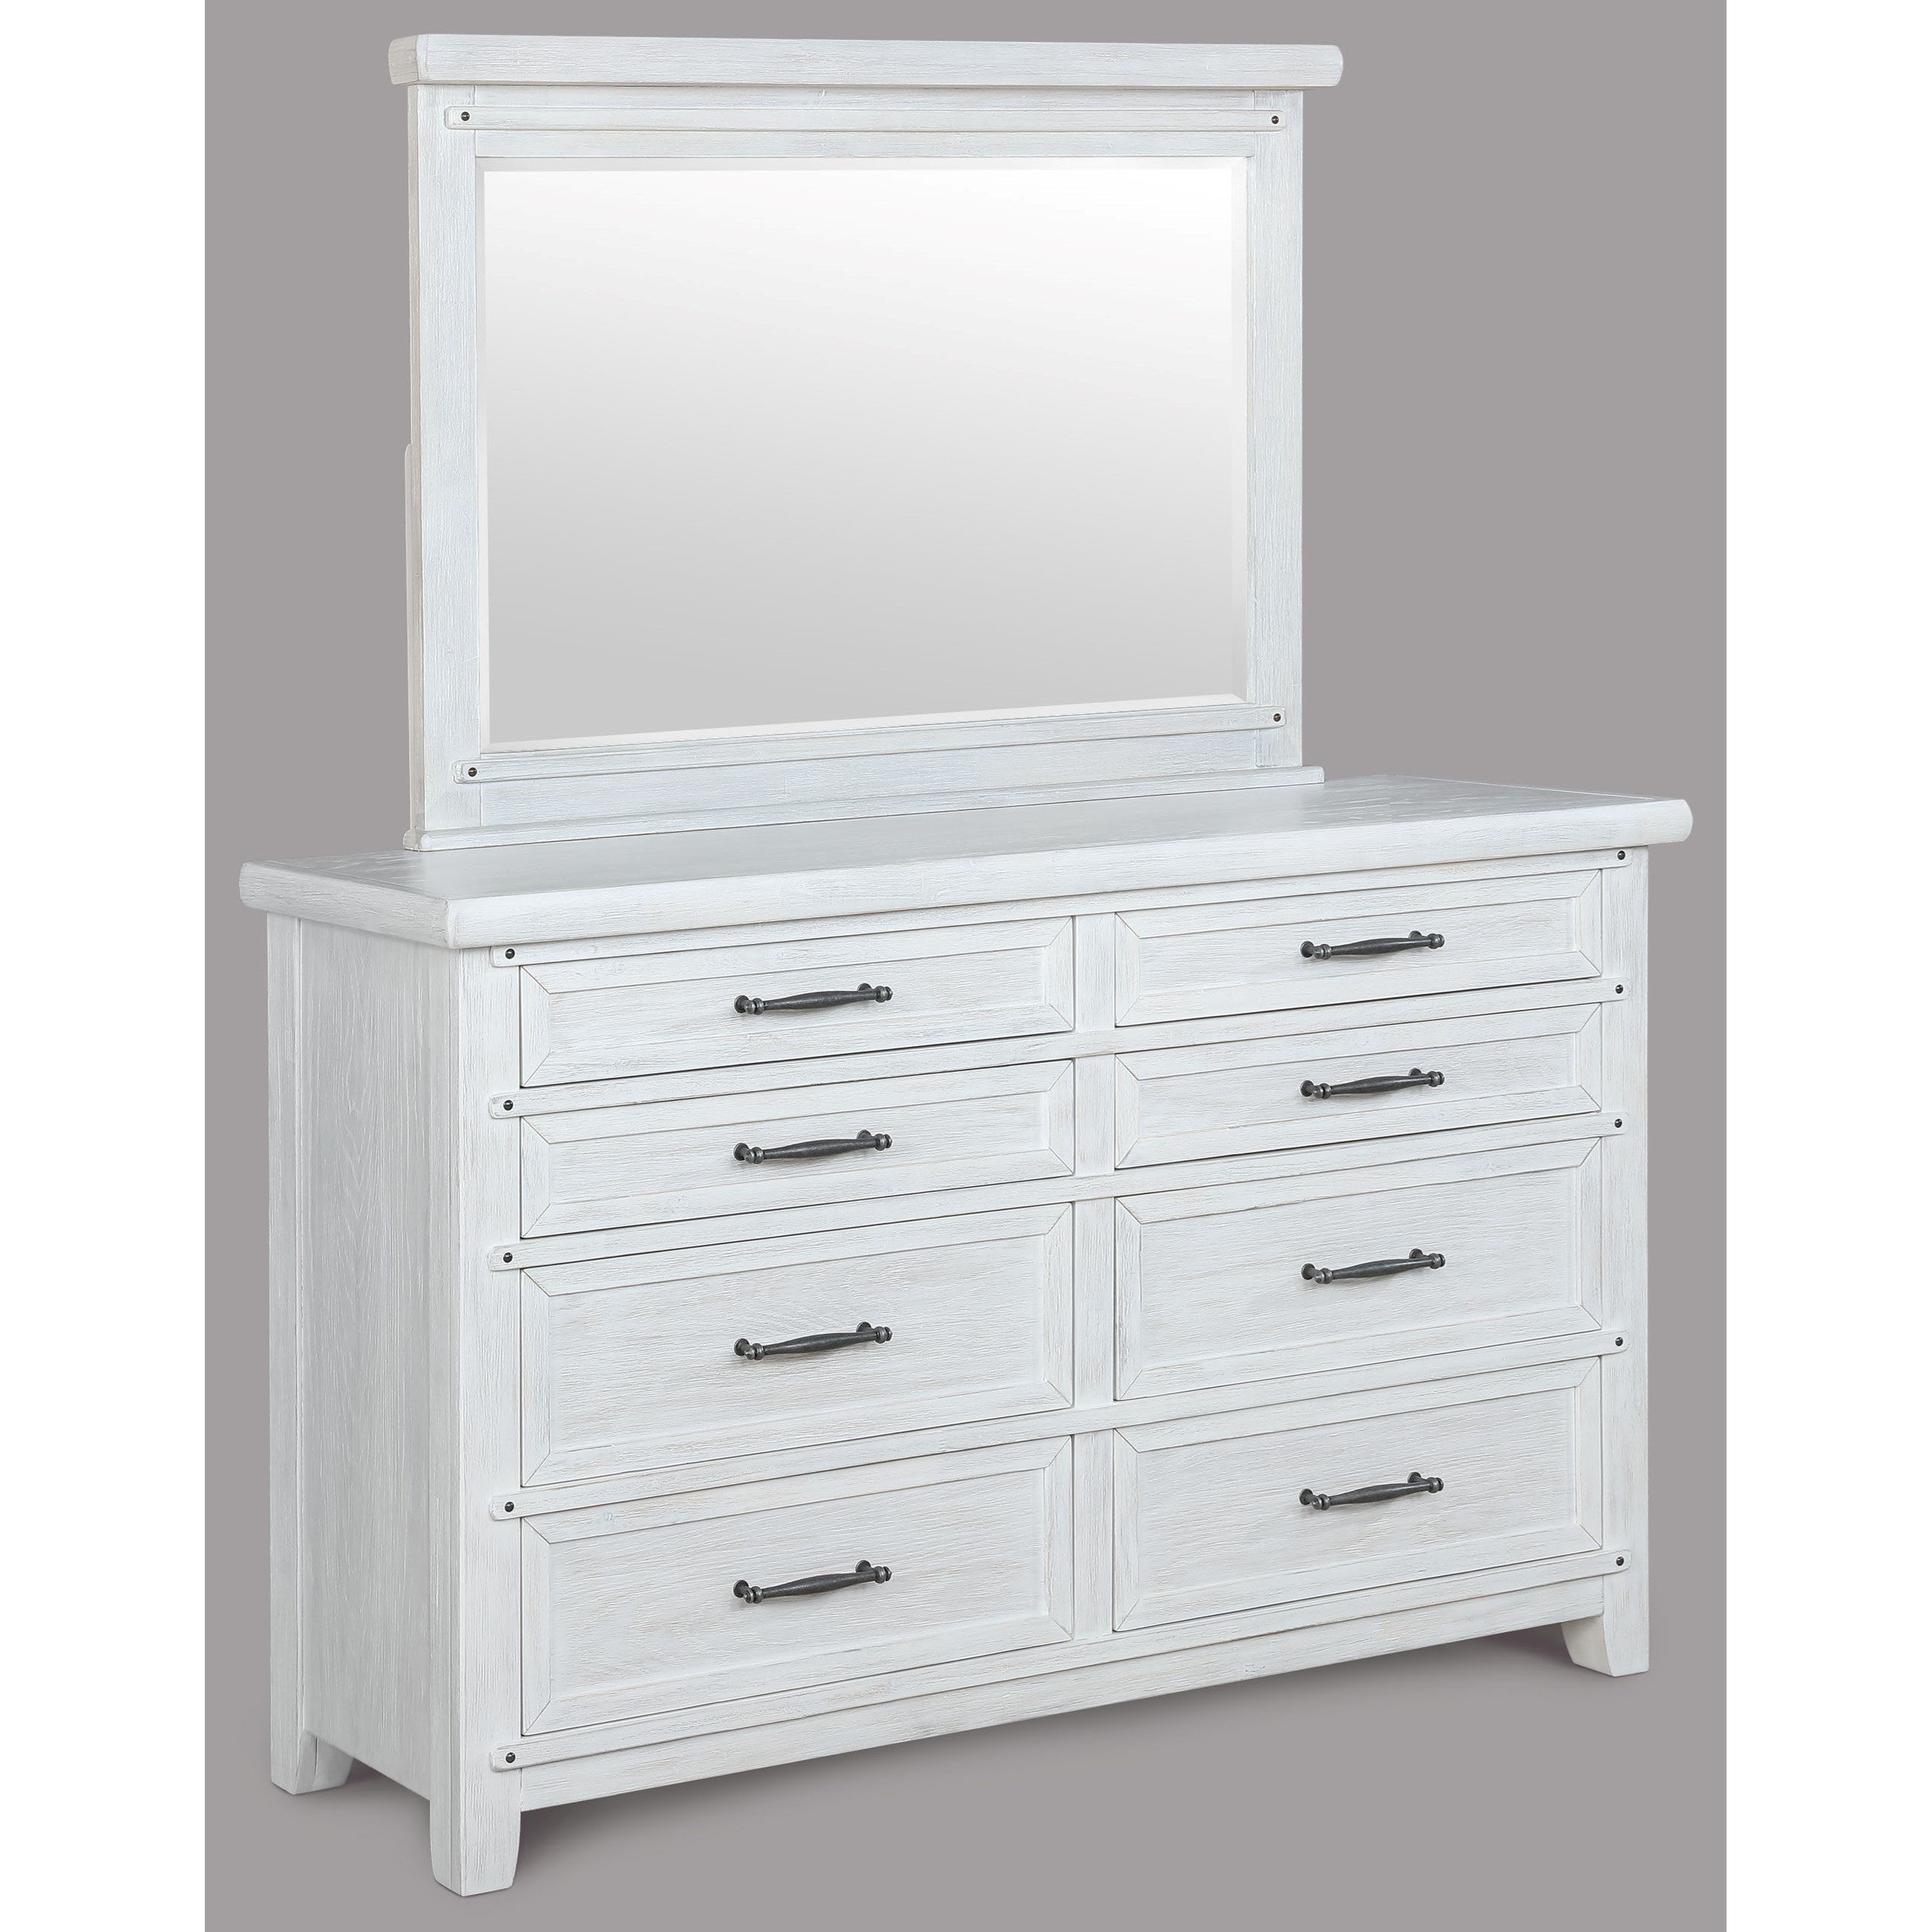 Maybelle Dresser and Mirror Set by Crown Mark at Darvin Furniture